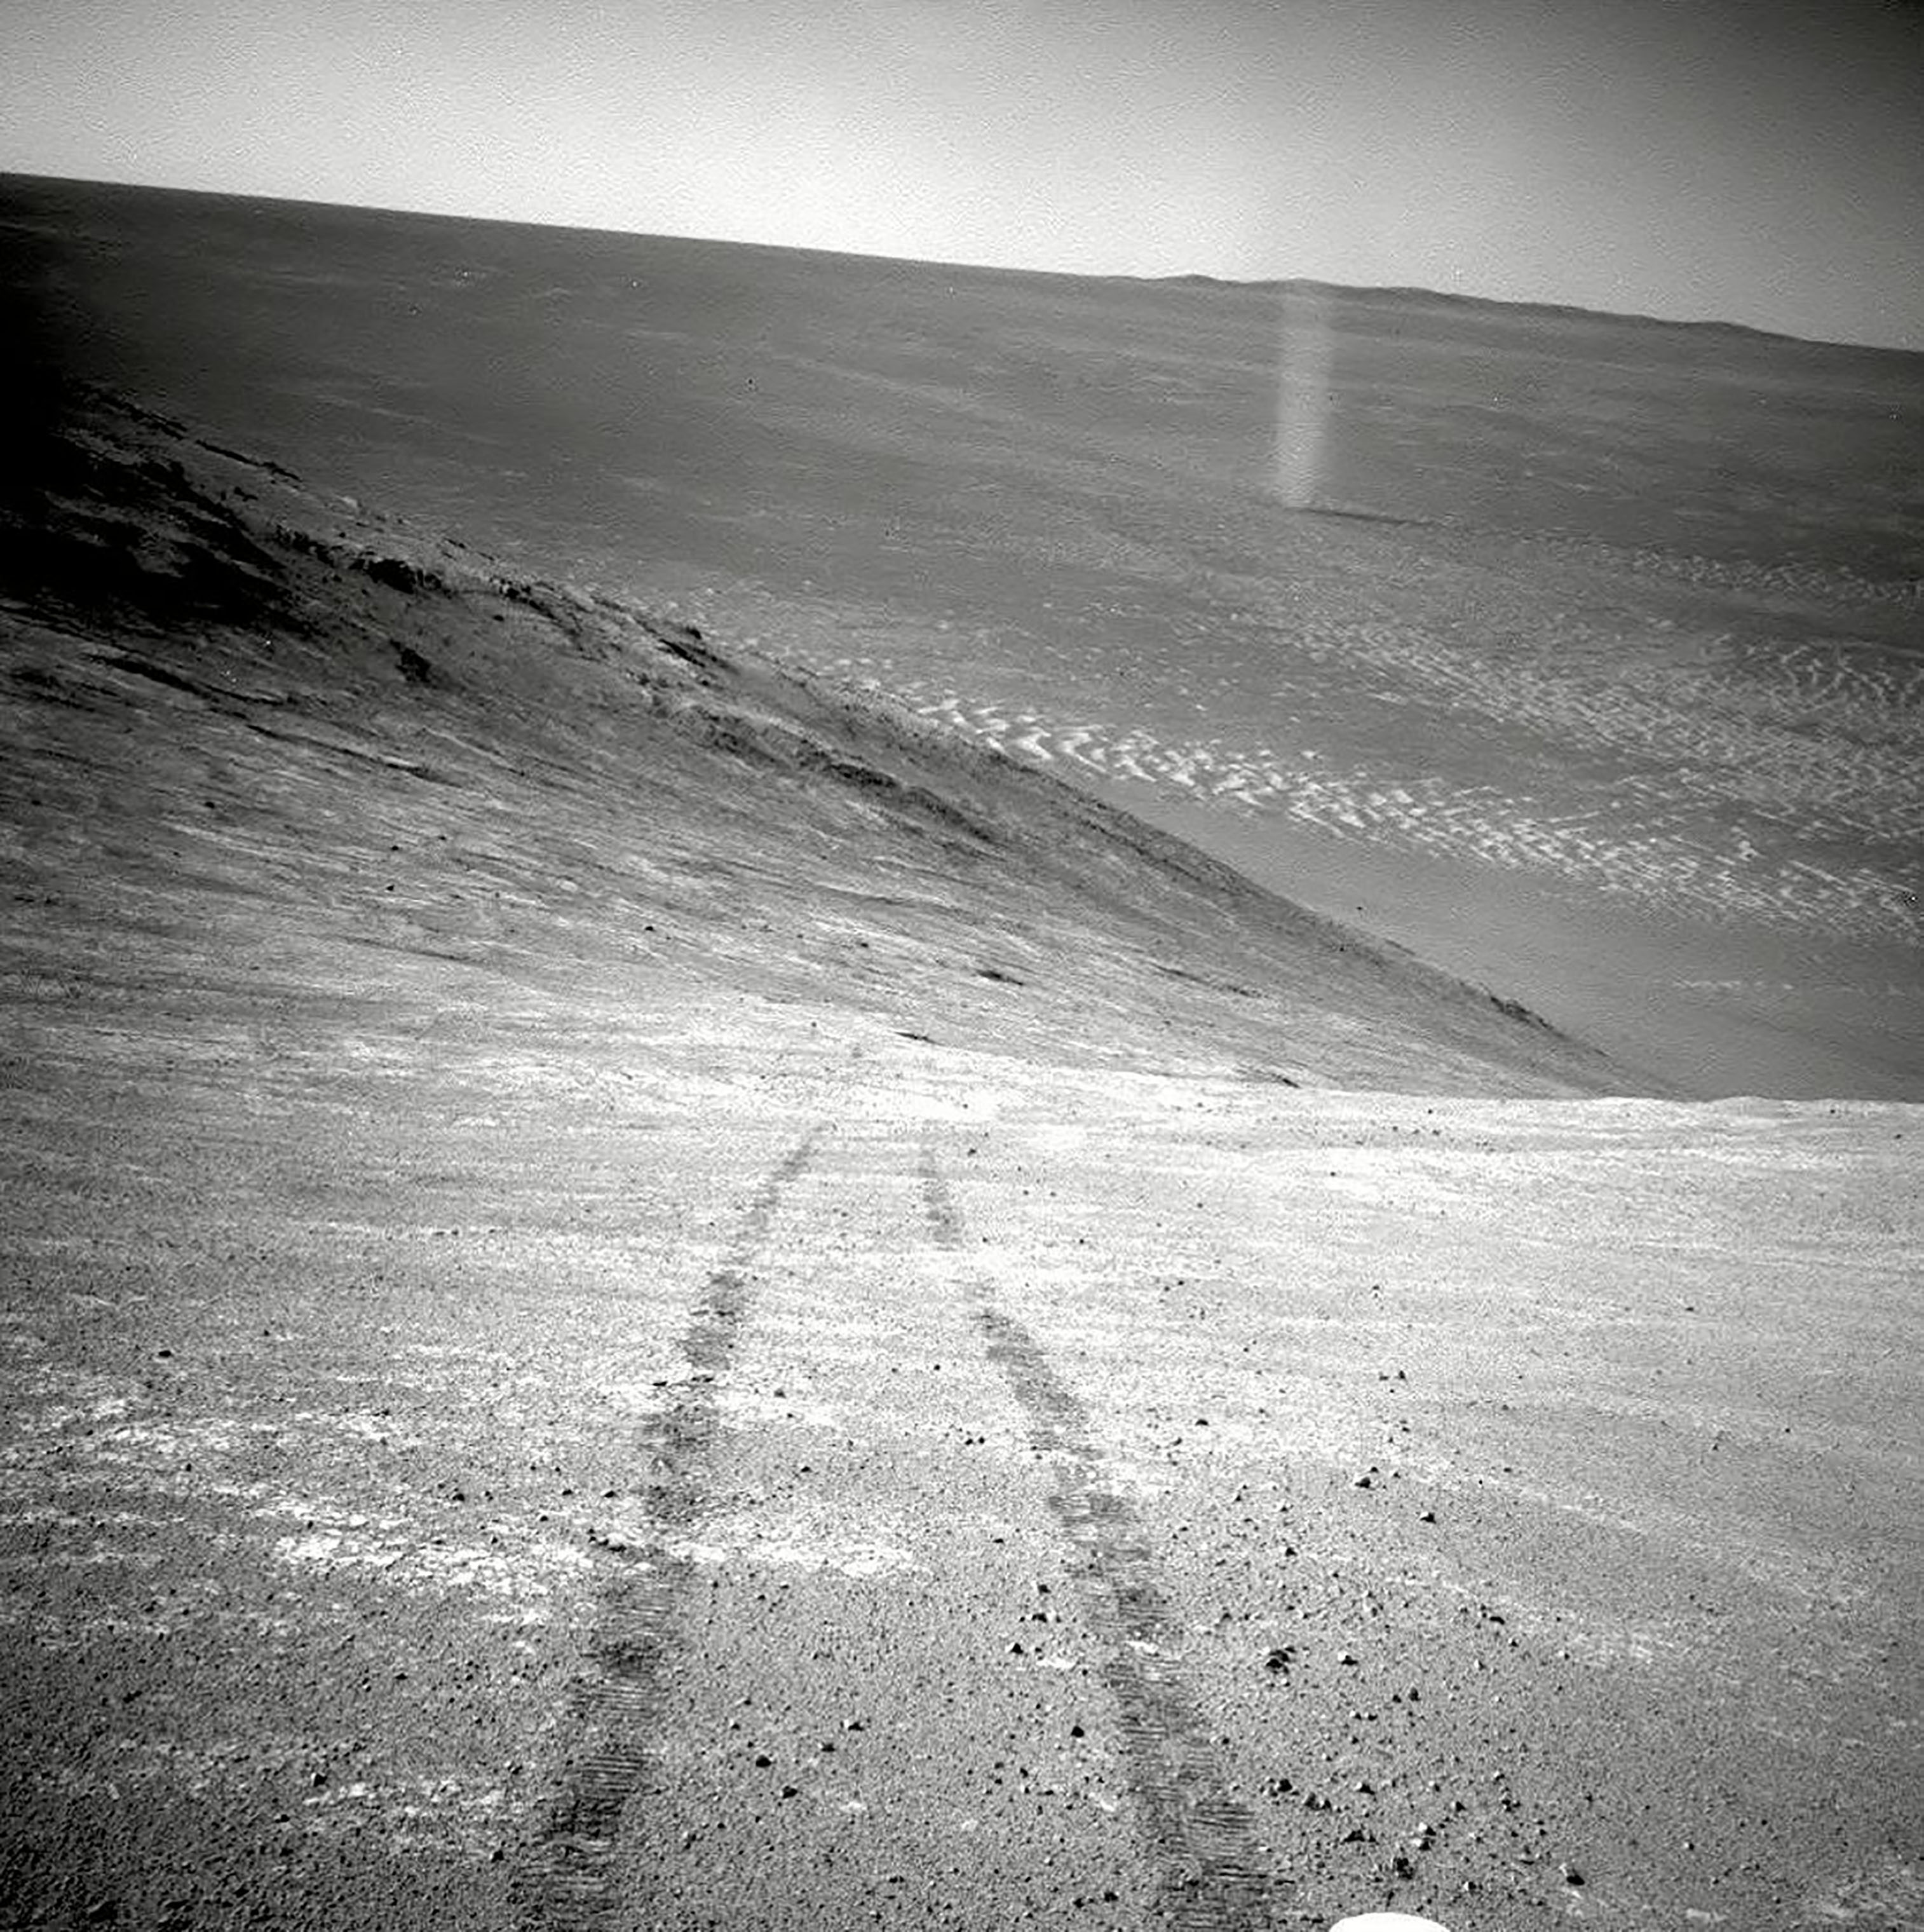 This photograph made available by NASA in March 2016 shows a dust devil in a valley on Mars, seen by the Opportunity rover perched on a ridge. The view looks back at the rover's tracks leading up the north-facing slope of  Knudsen Ridge.